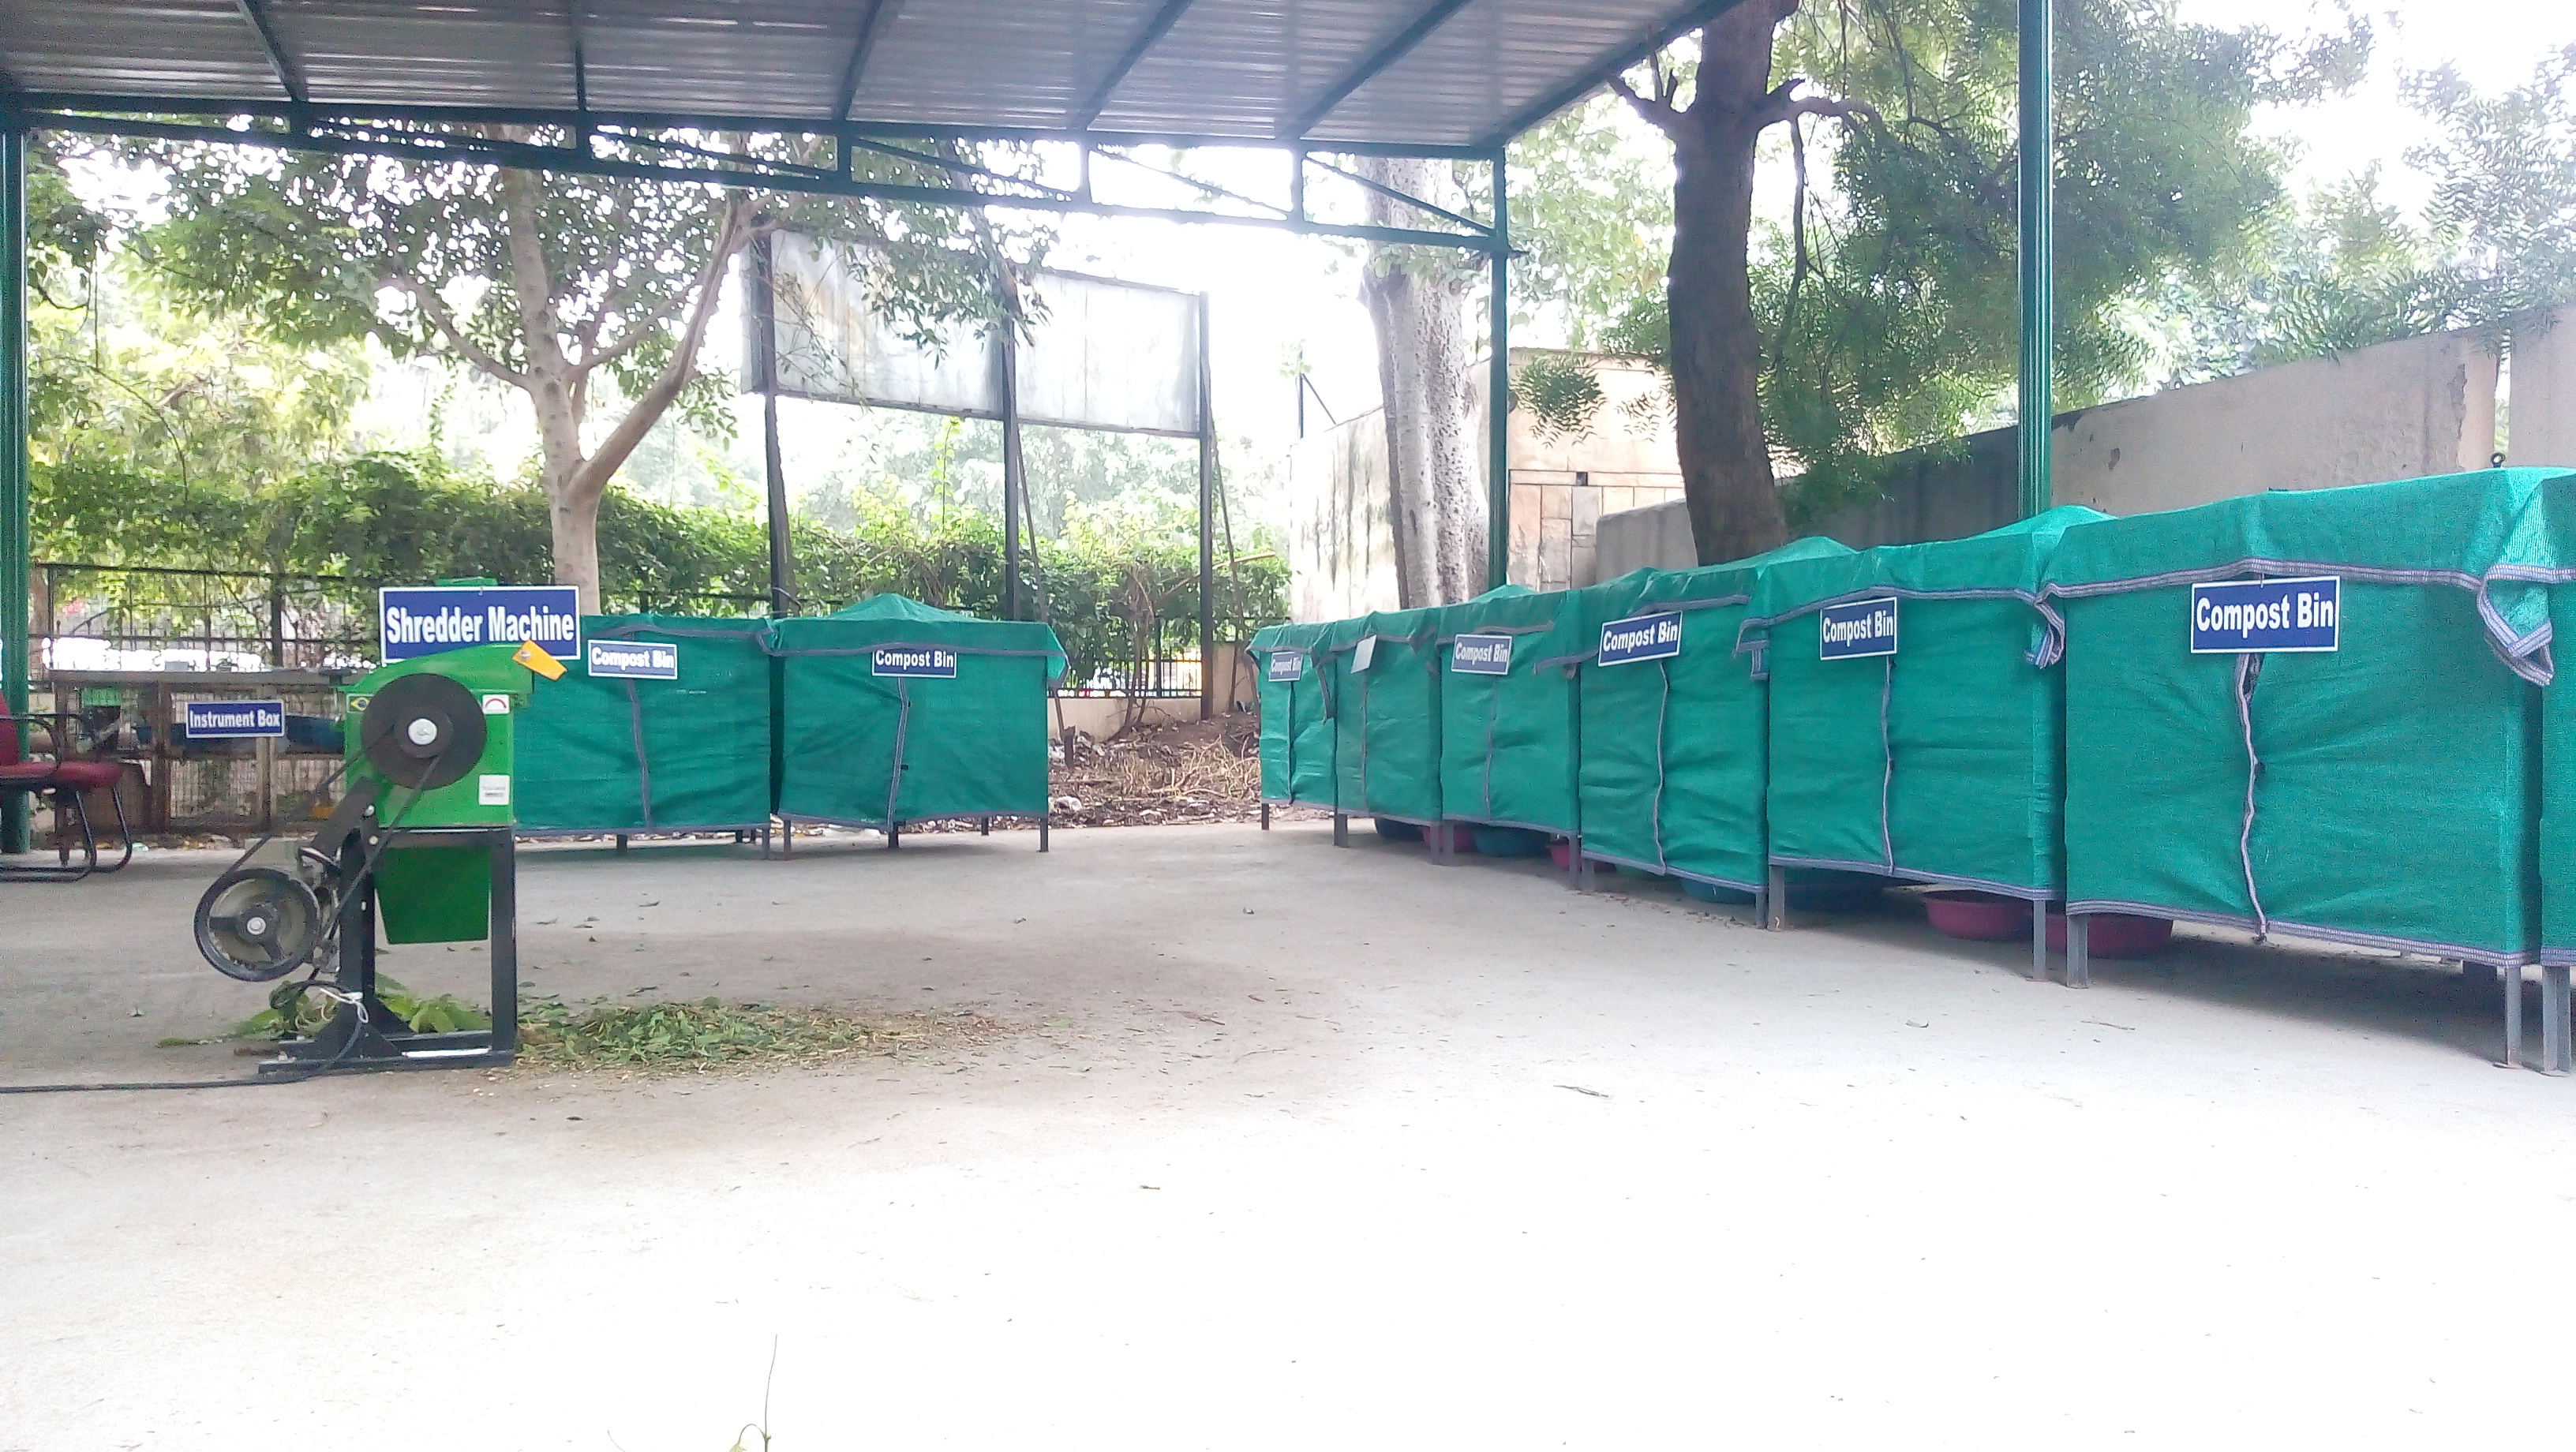 Vendor Balancing Bit's Natural Composting Set-Up at Haryana Institute of Public Administration